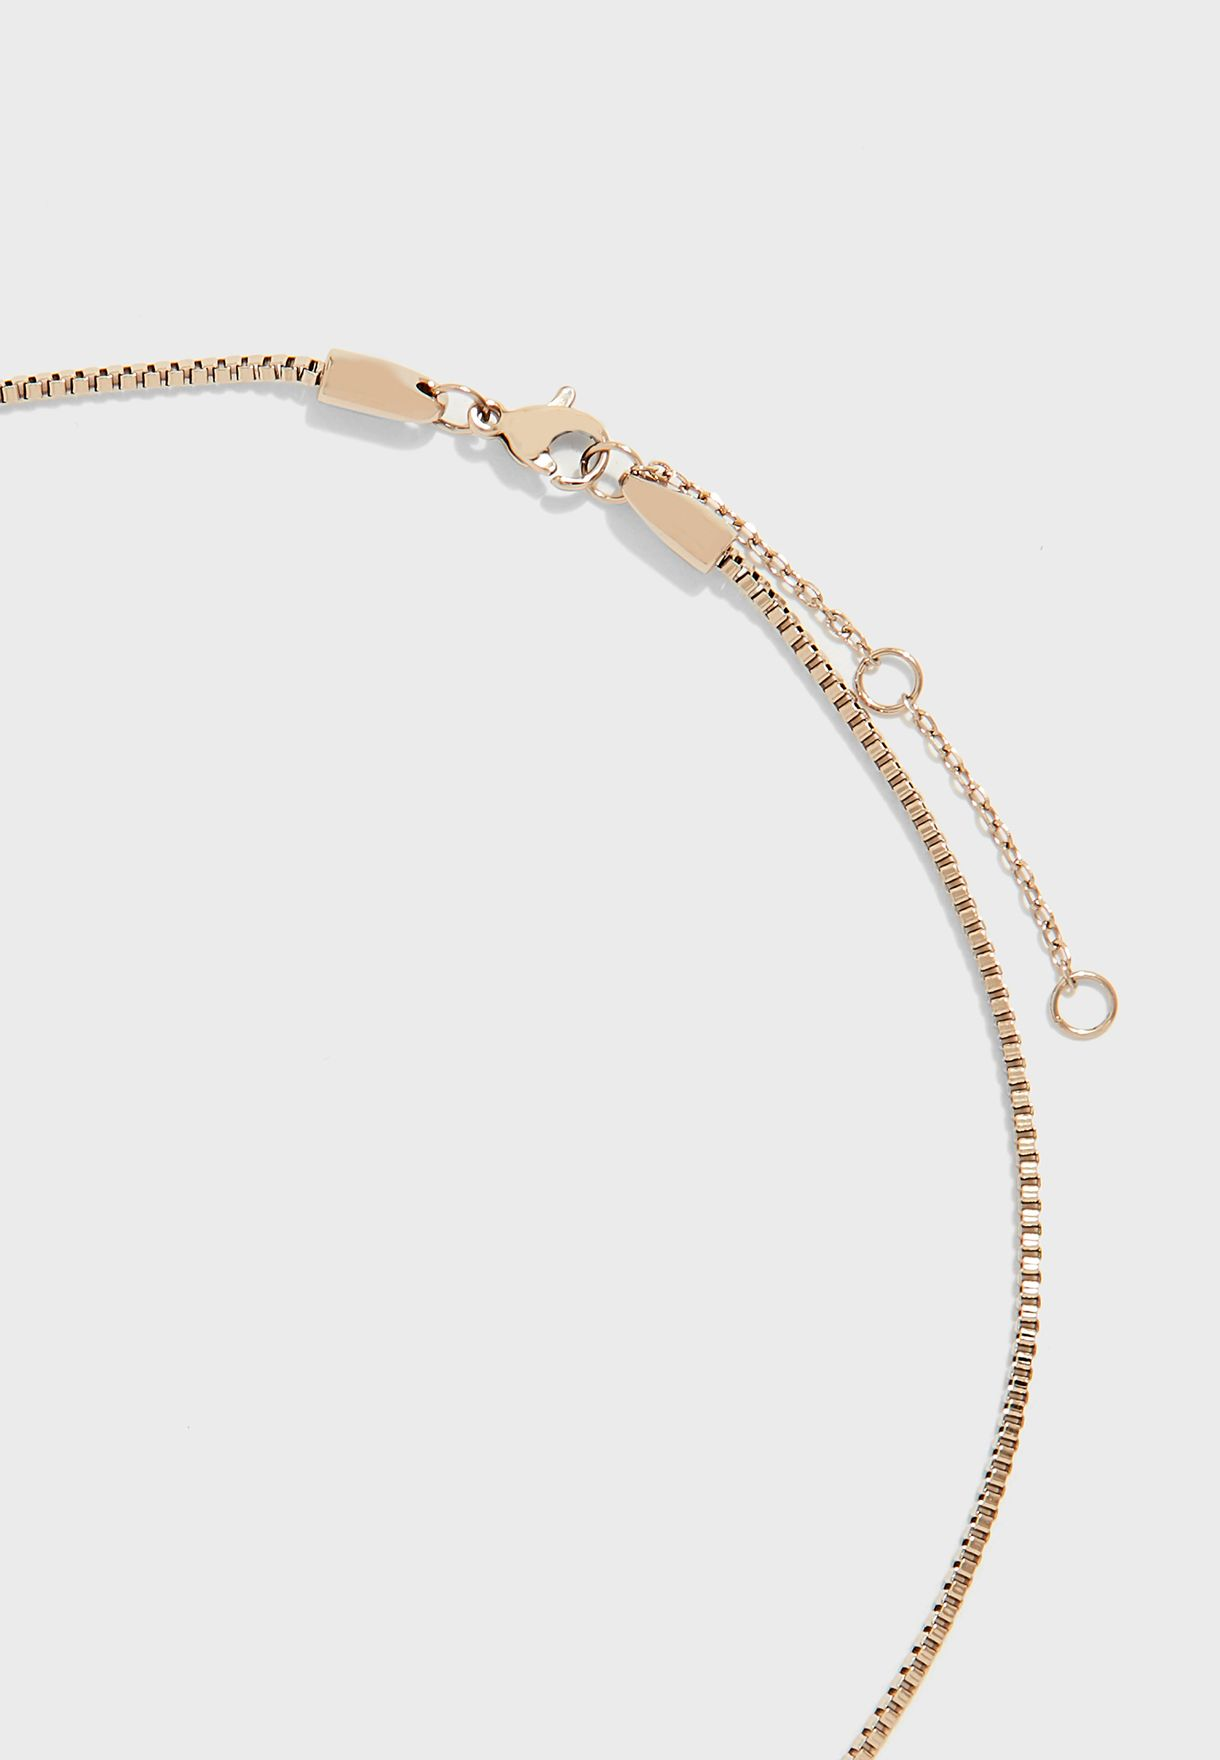 Box Chain Necklace With Charms